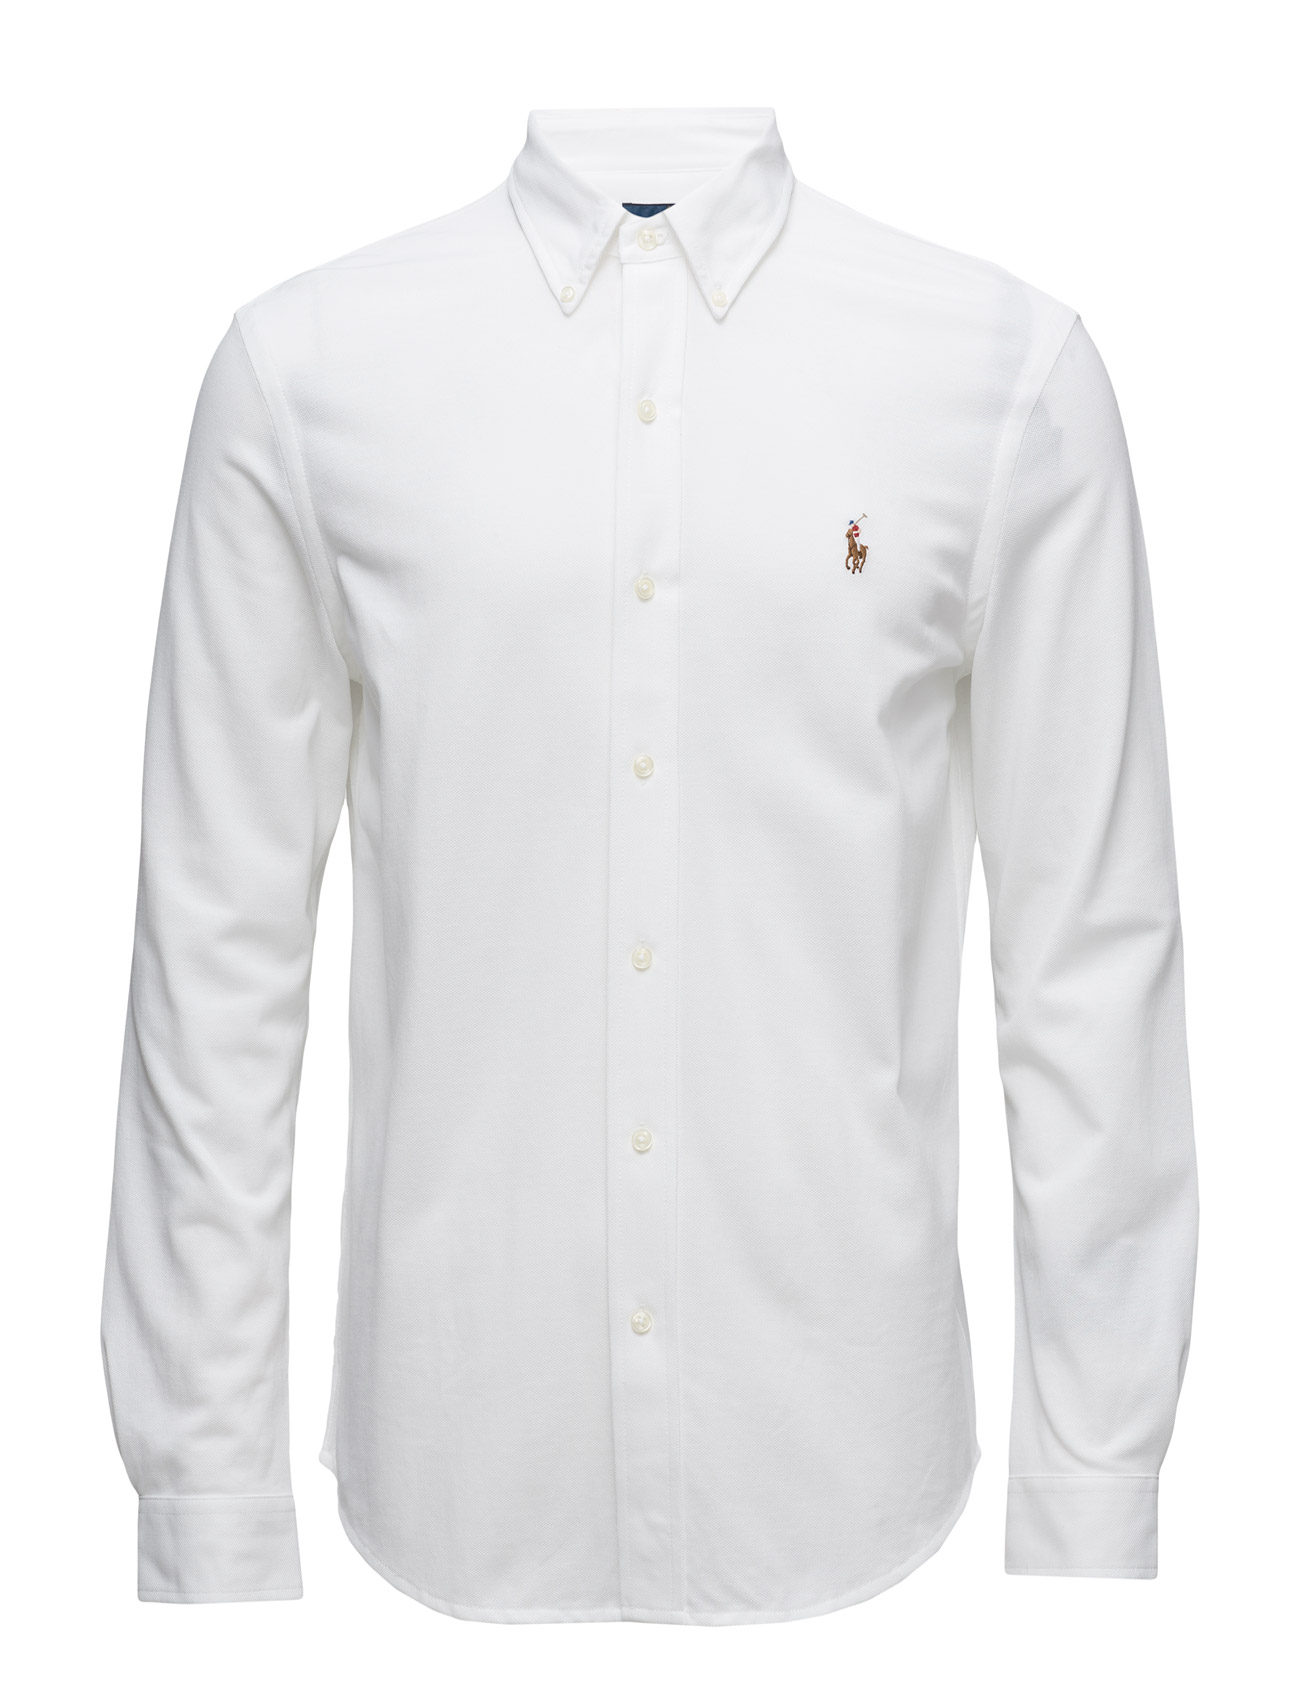 Polo Ralph Lauren Knit Oxford Shirt